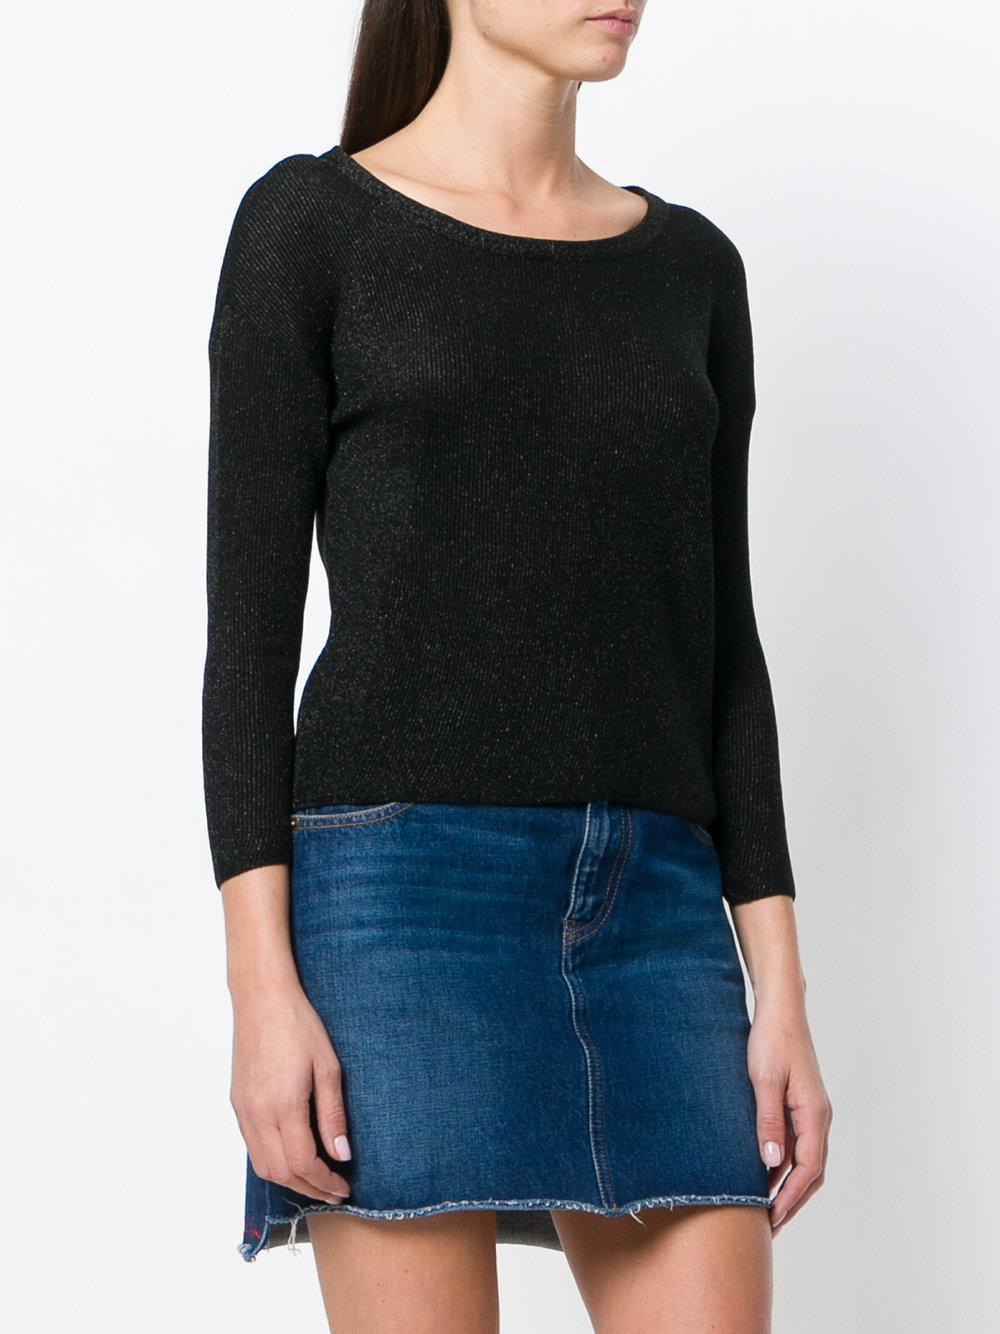 Moschino Cotton Ribbed Knit Top in Black